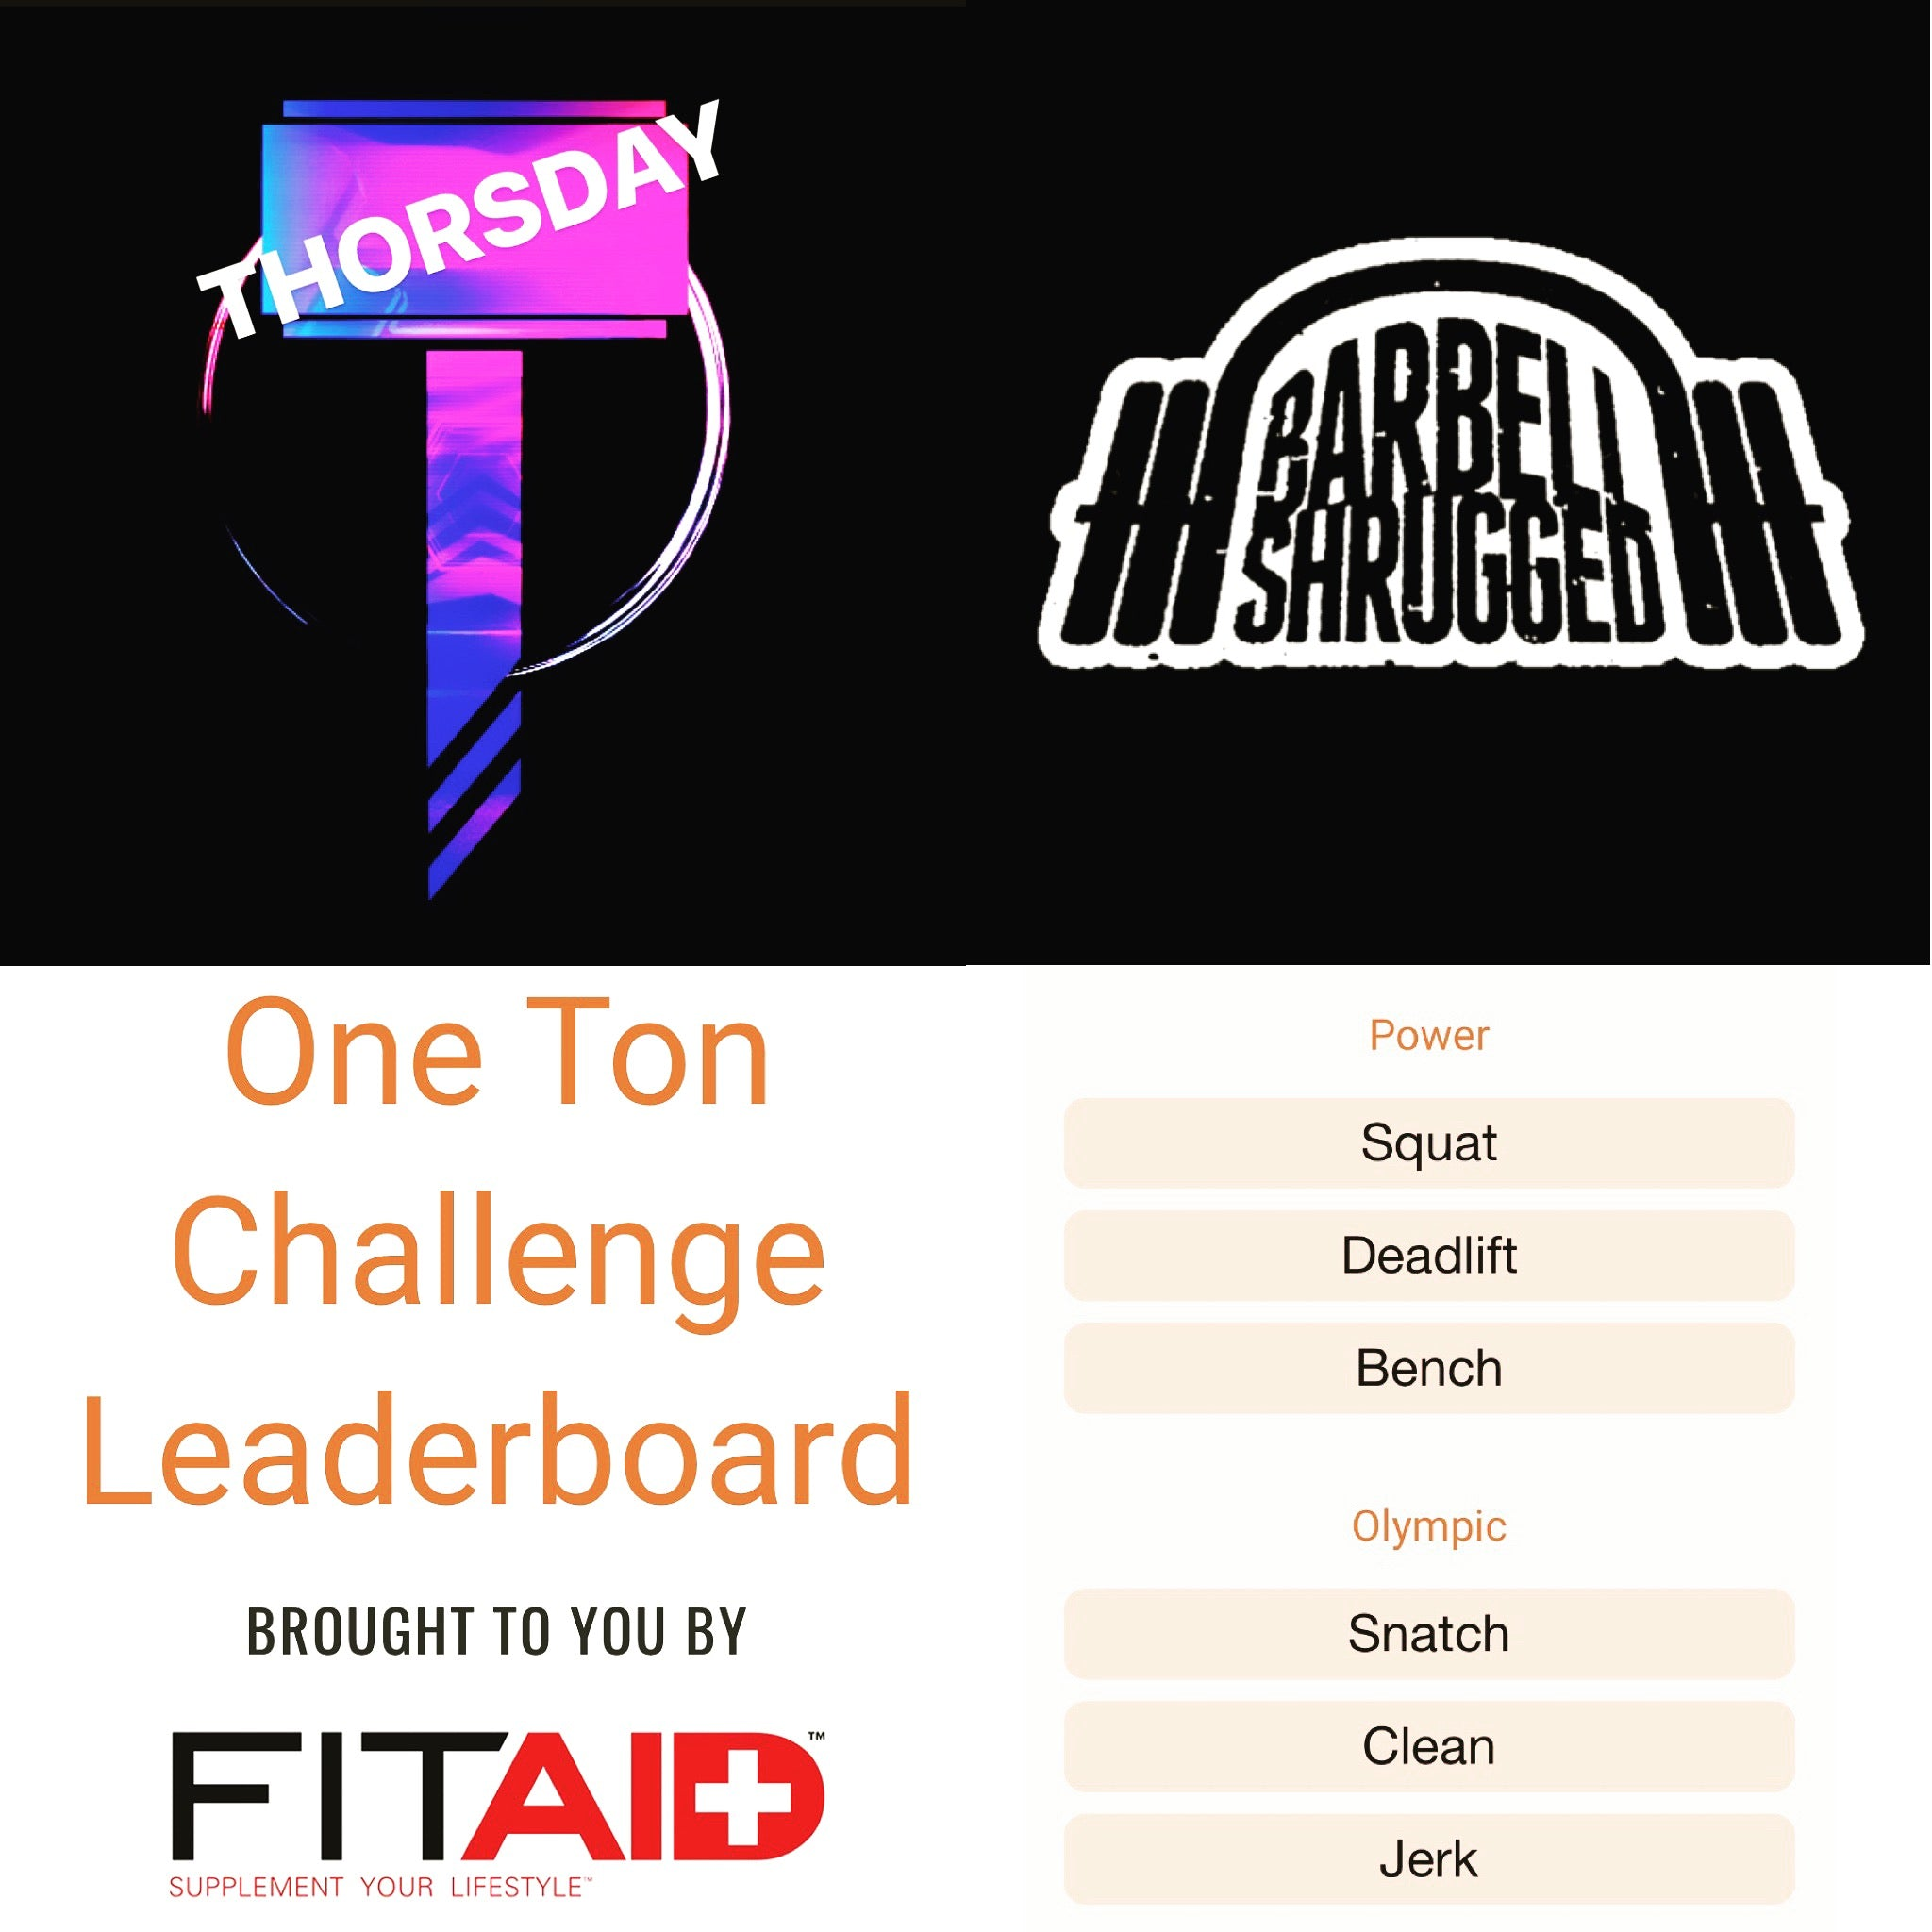 Thorsday 16-05-19 with The Barbell Shrugged Collective and FitAid